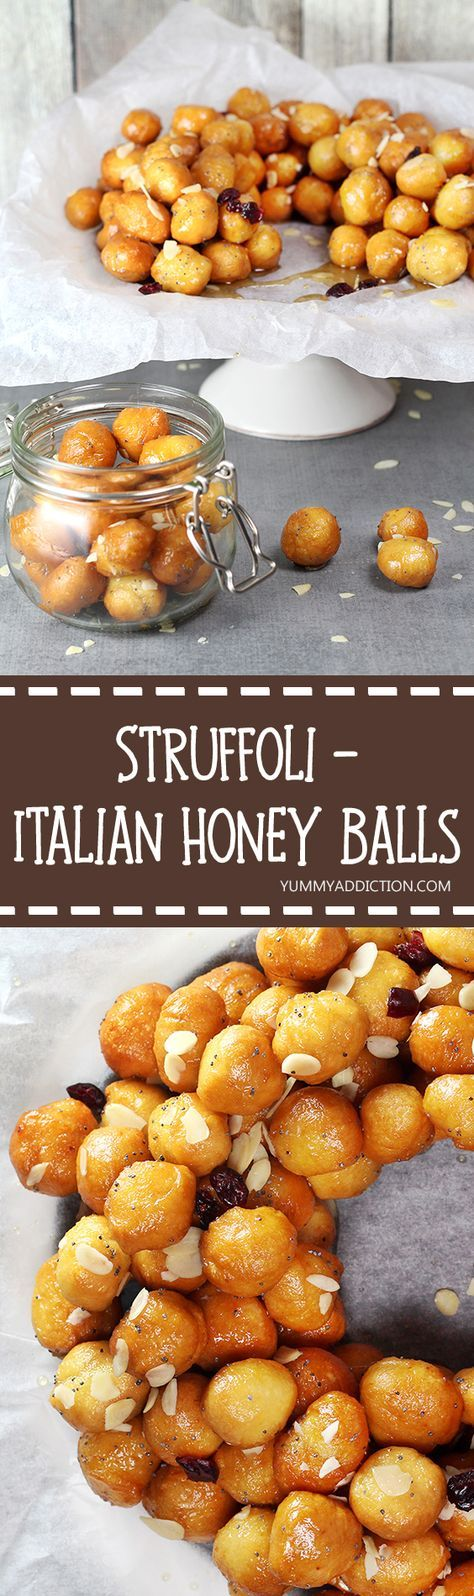 These Italian Honey Balls (Struffoli) are usually served on Christmas and other holidays. They are crunchy on the outside, soft and warm inside. Perfection! | http://yummyaddiction.com